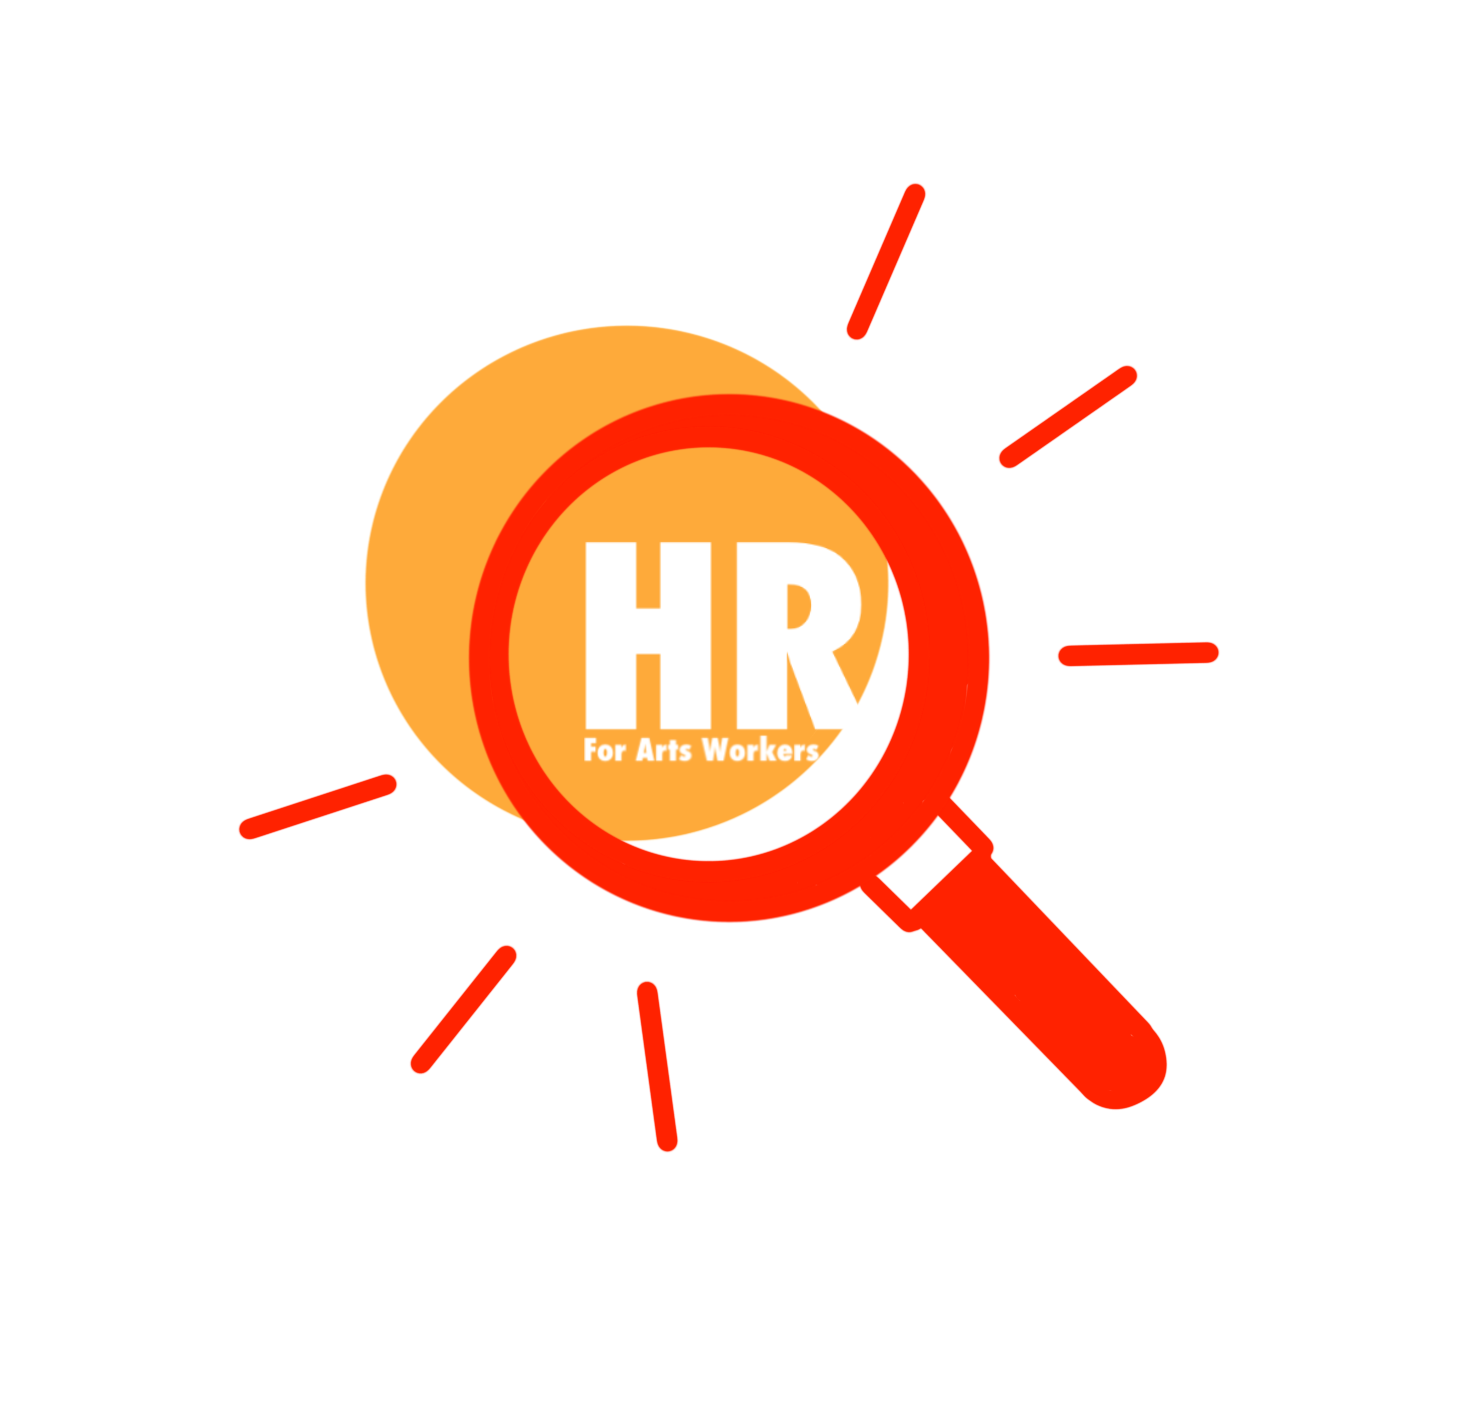 Illustration of a red magnifying glass. Inside the glass its written 'HR for Arts Workers'.